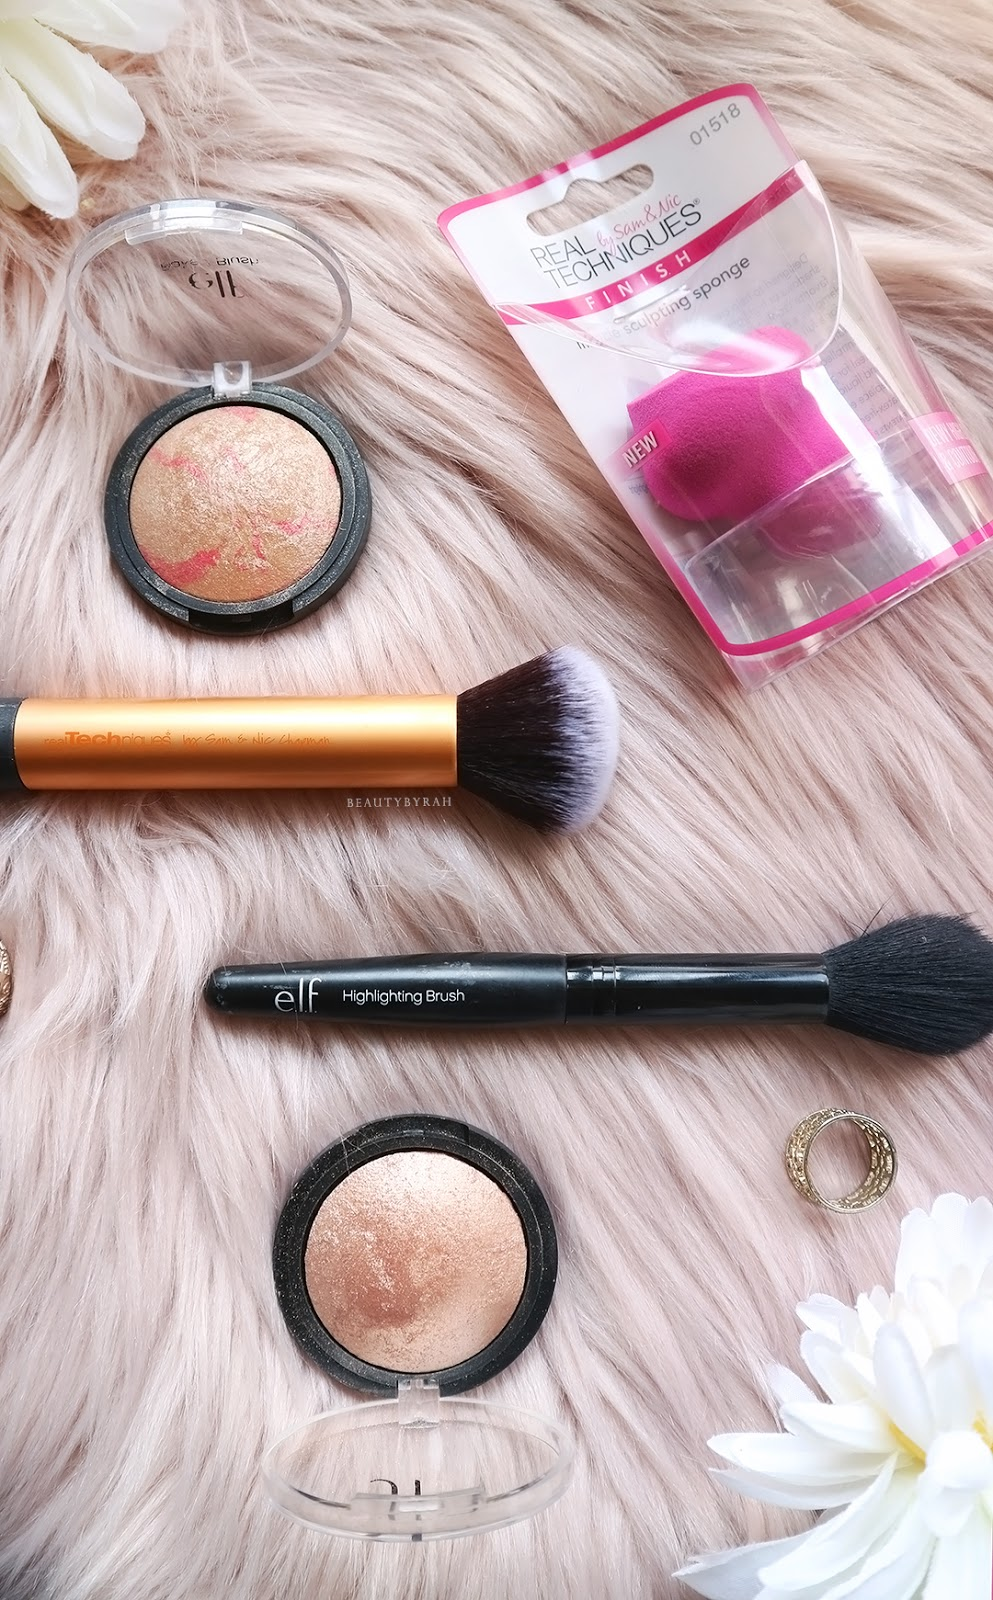 iHerb Beauty and Makeup Recommendations